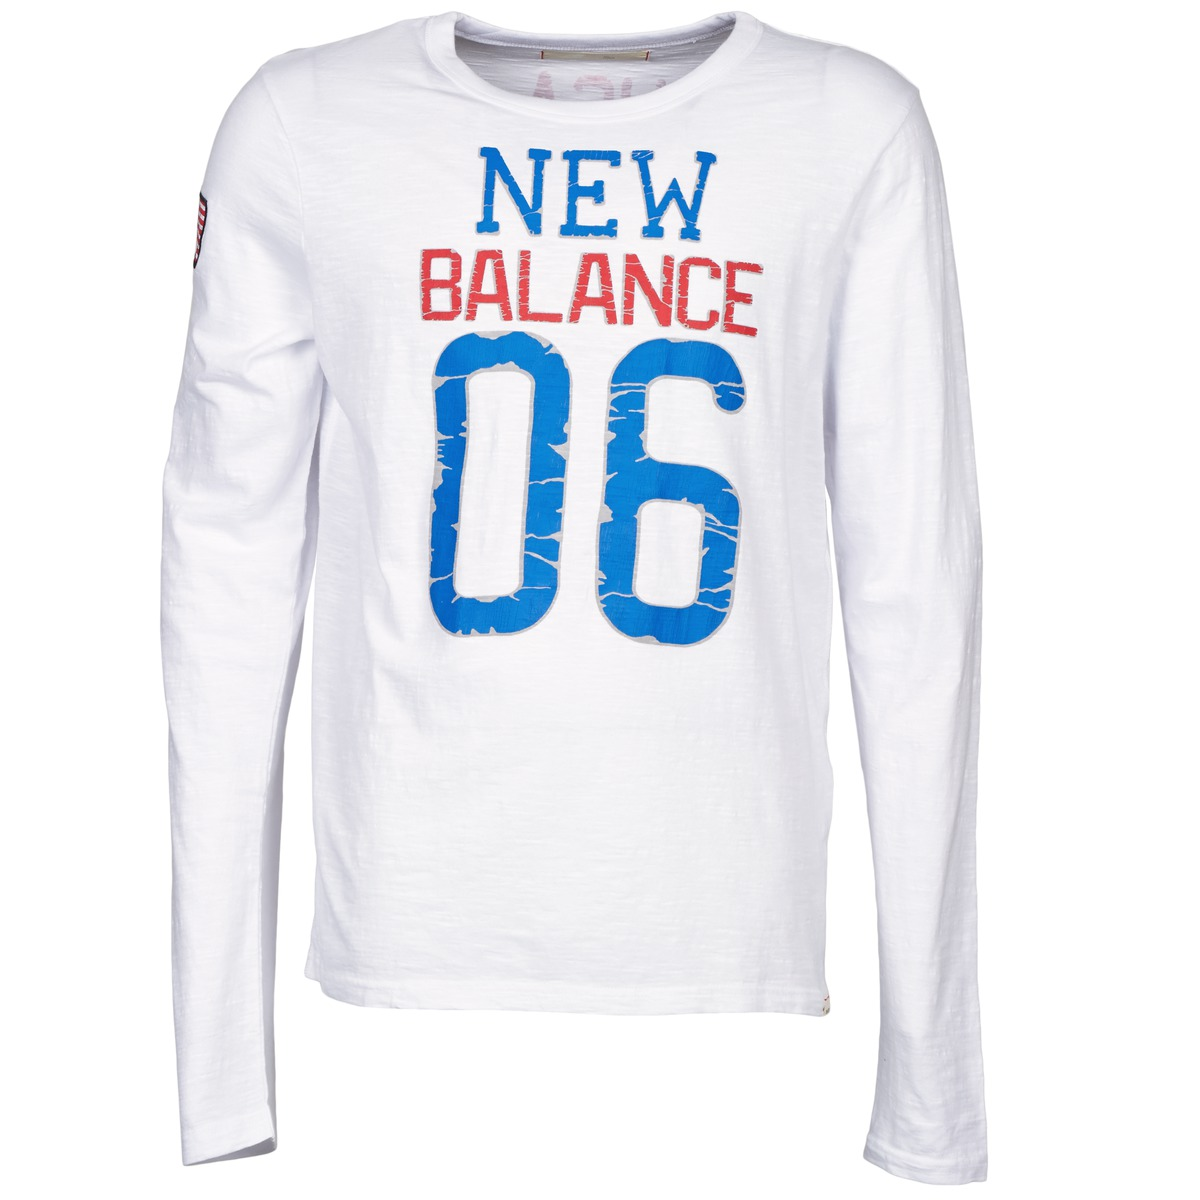 New Balance NBSS1404 GRAPHIC LONG SLEEVE TEE Weiss